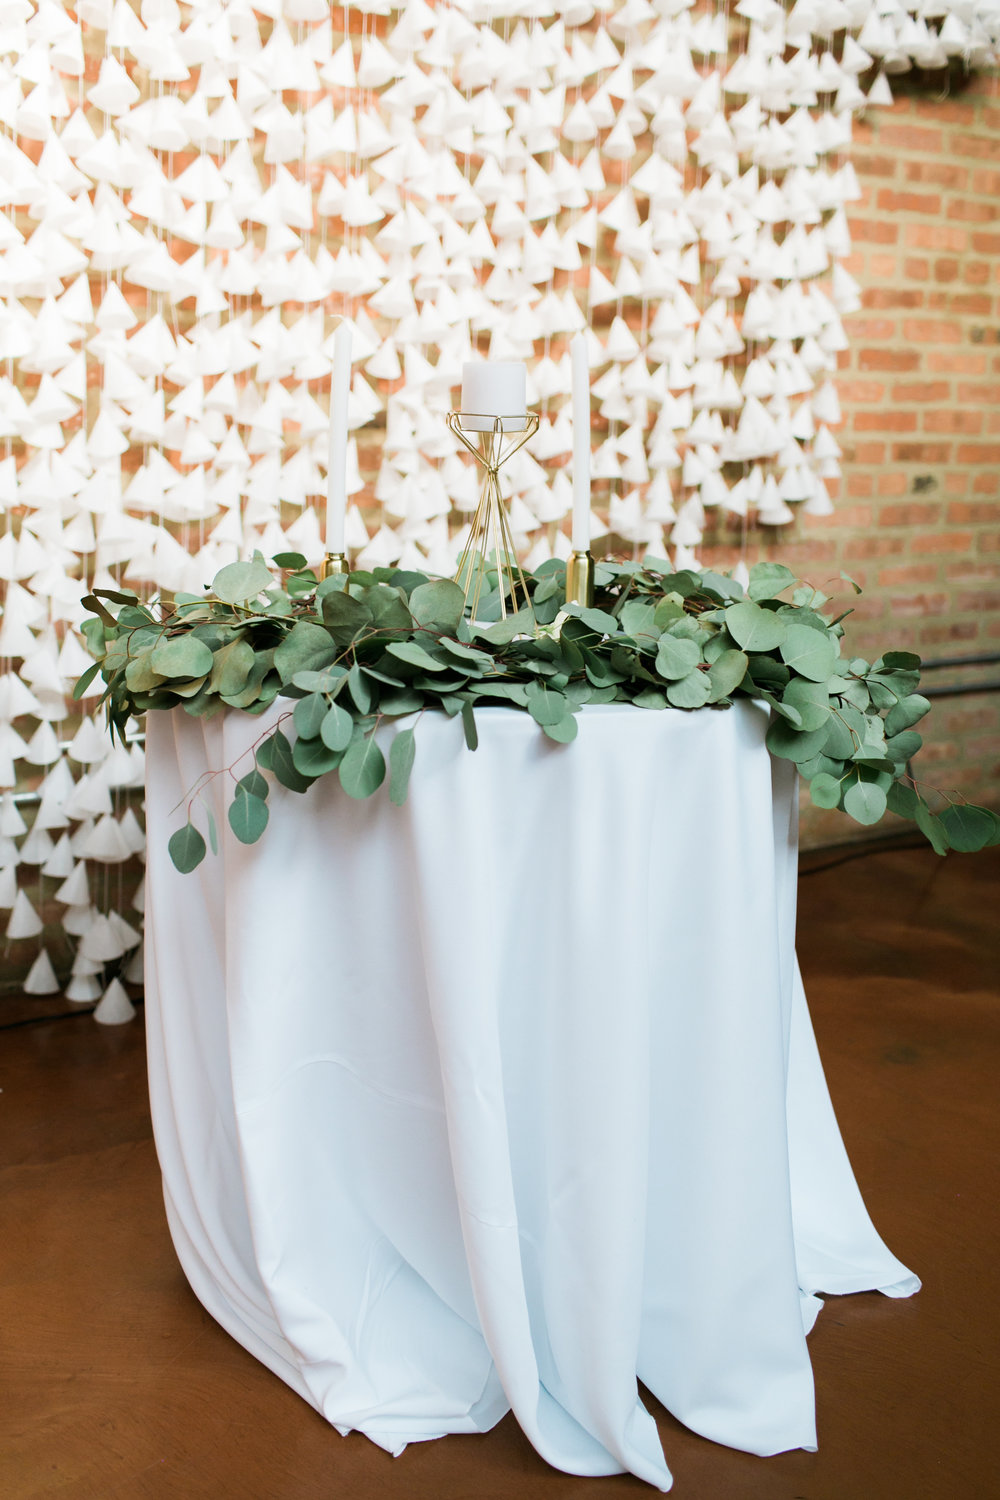 Garland and ceremony backdrop by Grace Niu & Priscilla Lee, photo by  Mayden Photography